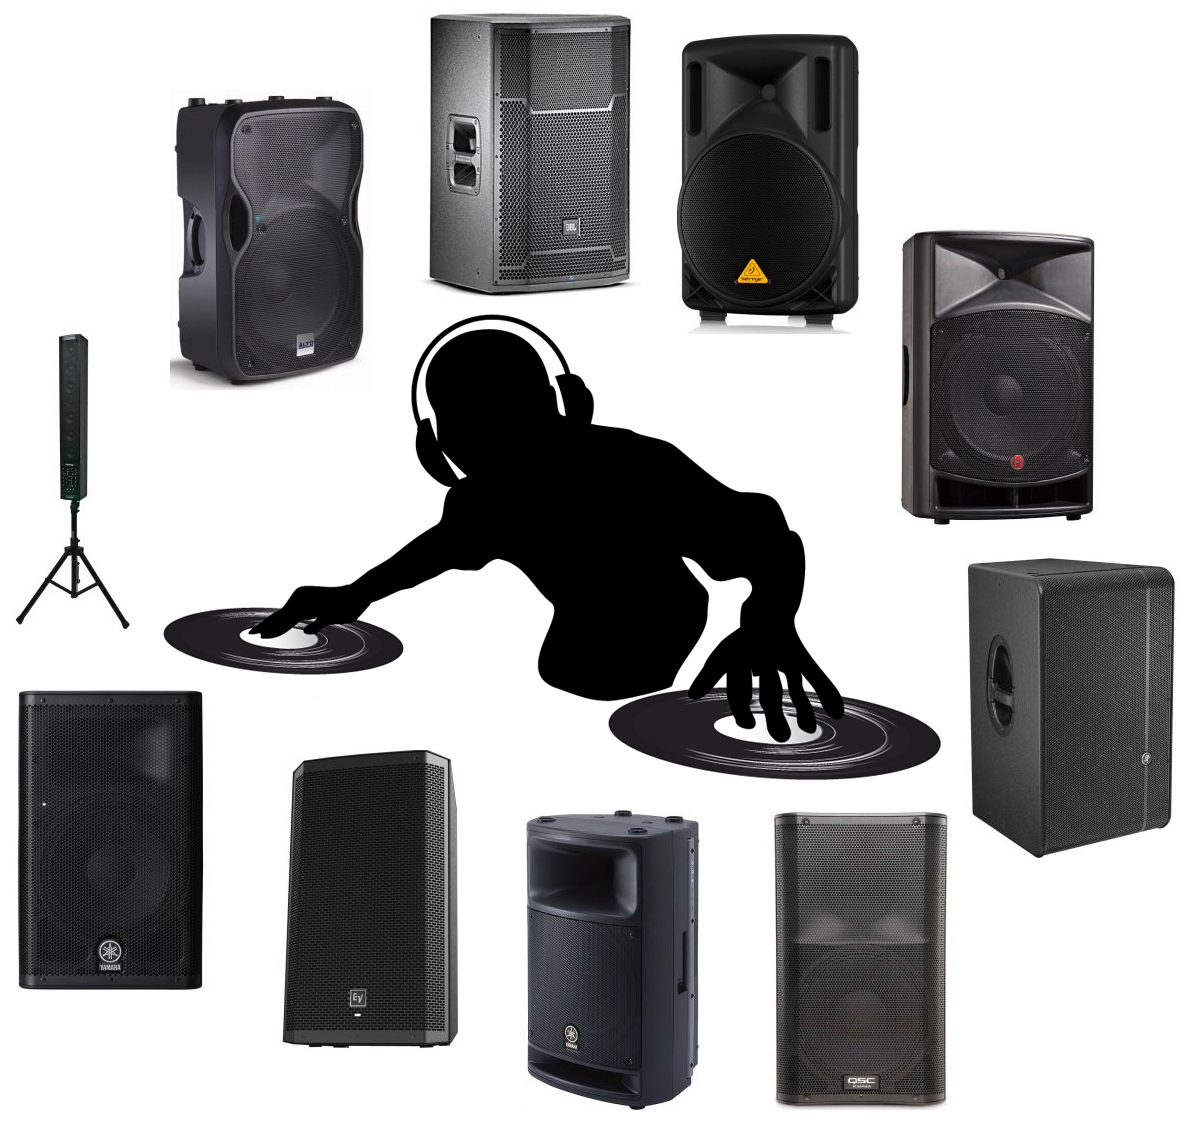 The Top 10 Best Dj Speakers In The Market  My Speaker Guide. Decorative Wall Decor. Tornado Safe Rooms. 50's Decor. Costco Furniture Living Room. Dorm Room Decor. Vintage Decoration. Viejas Hotel Rooms. Bassett Living Room Furniture